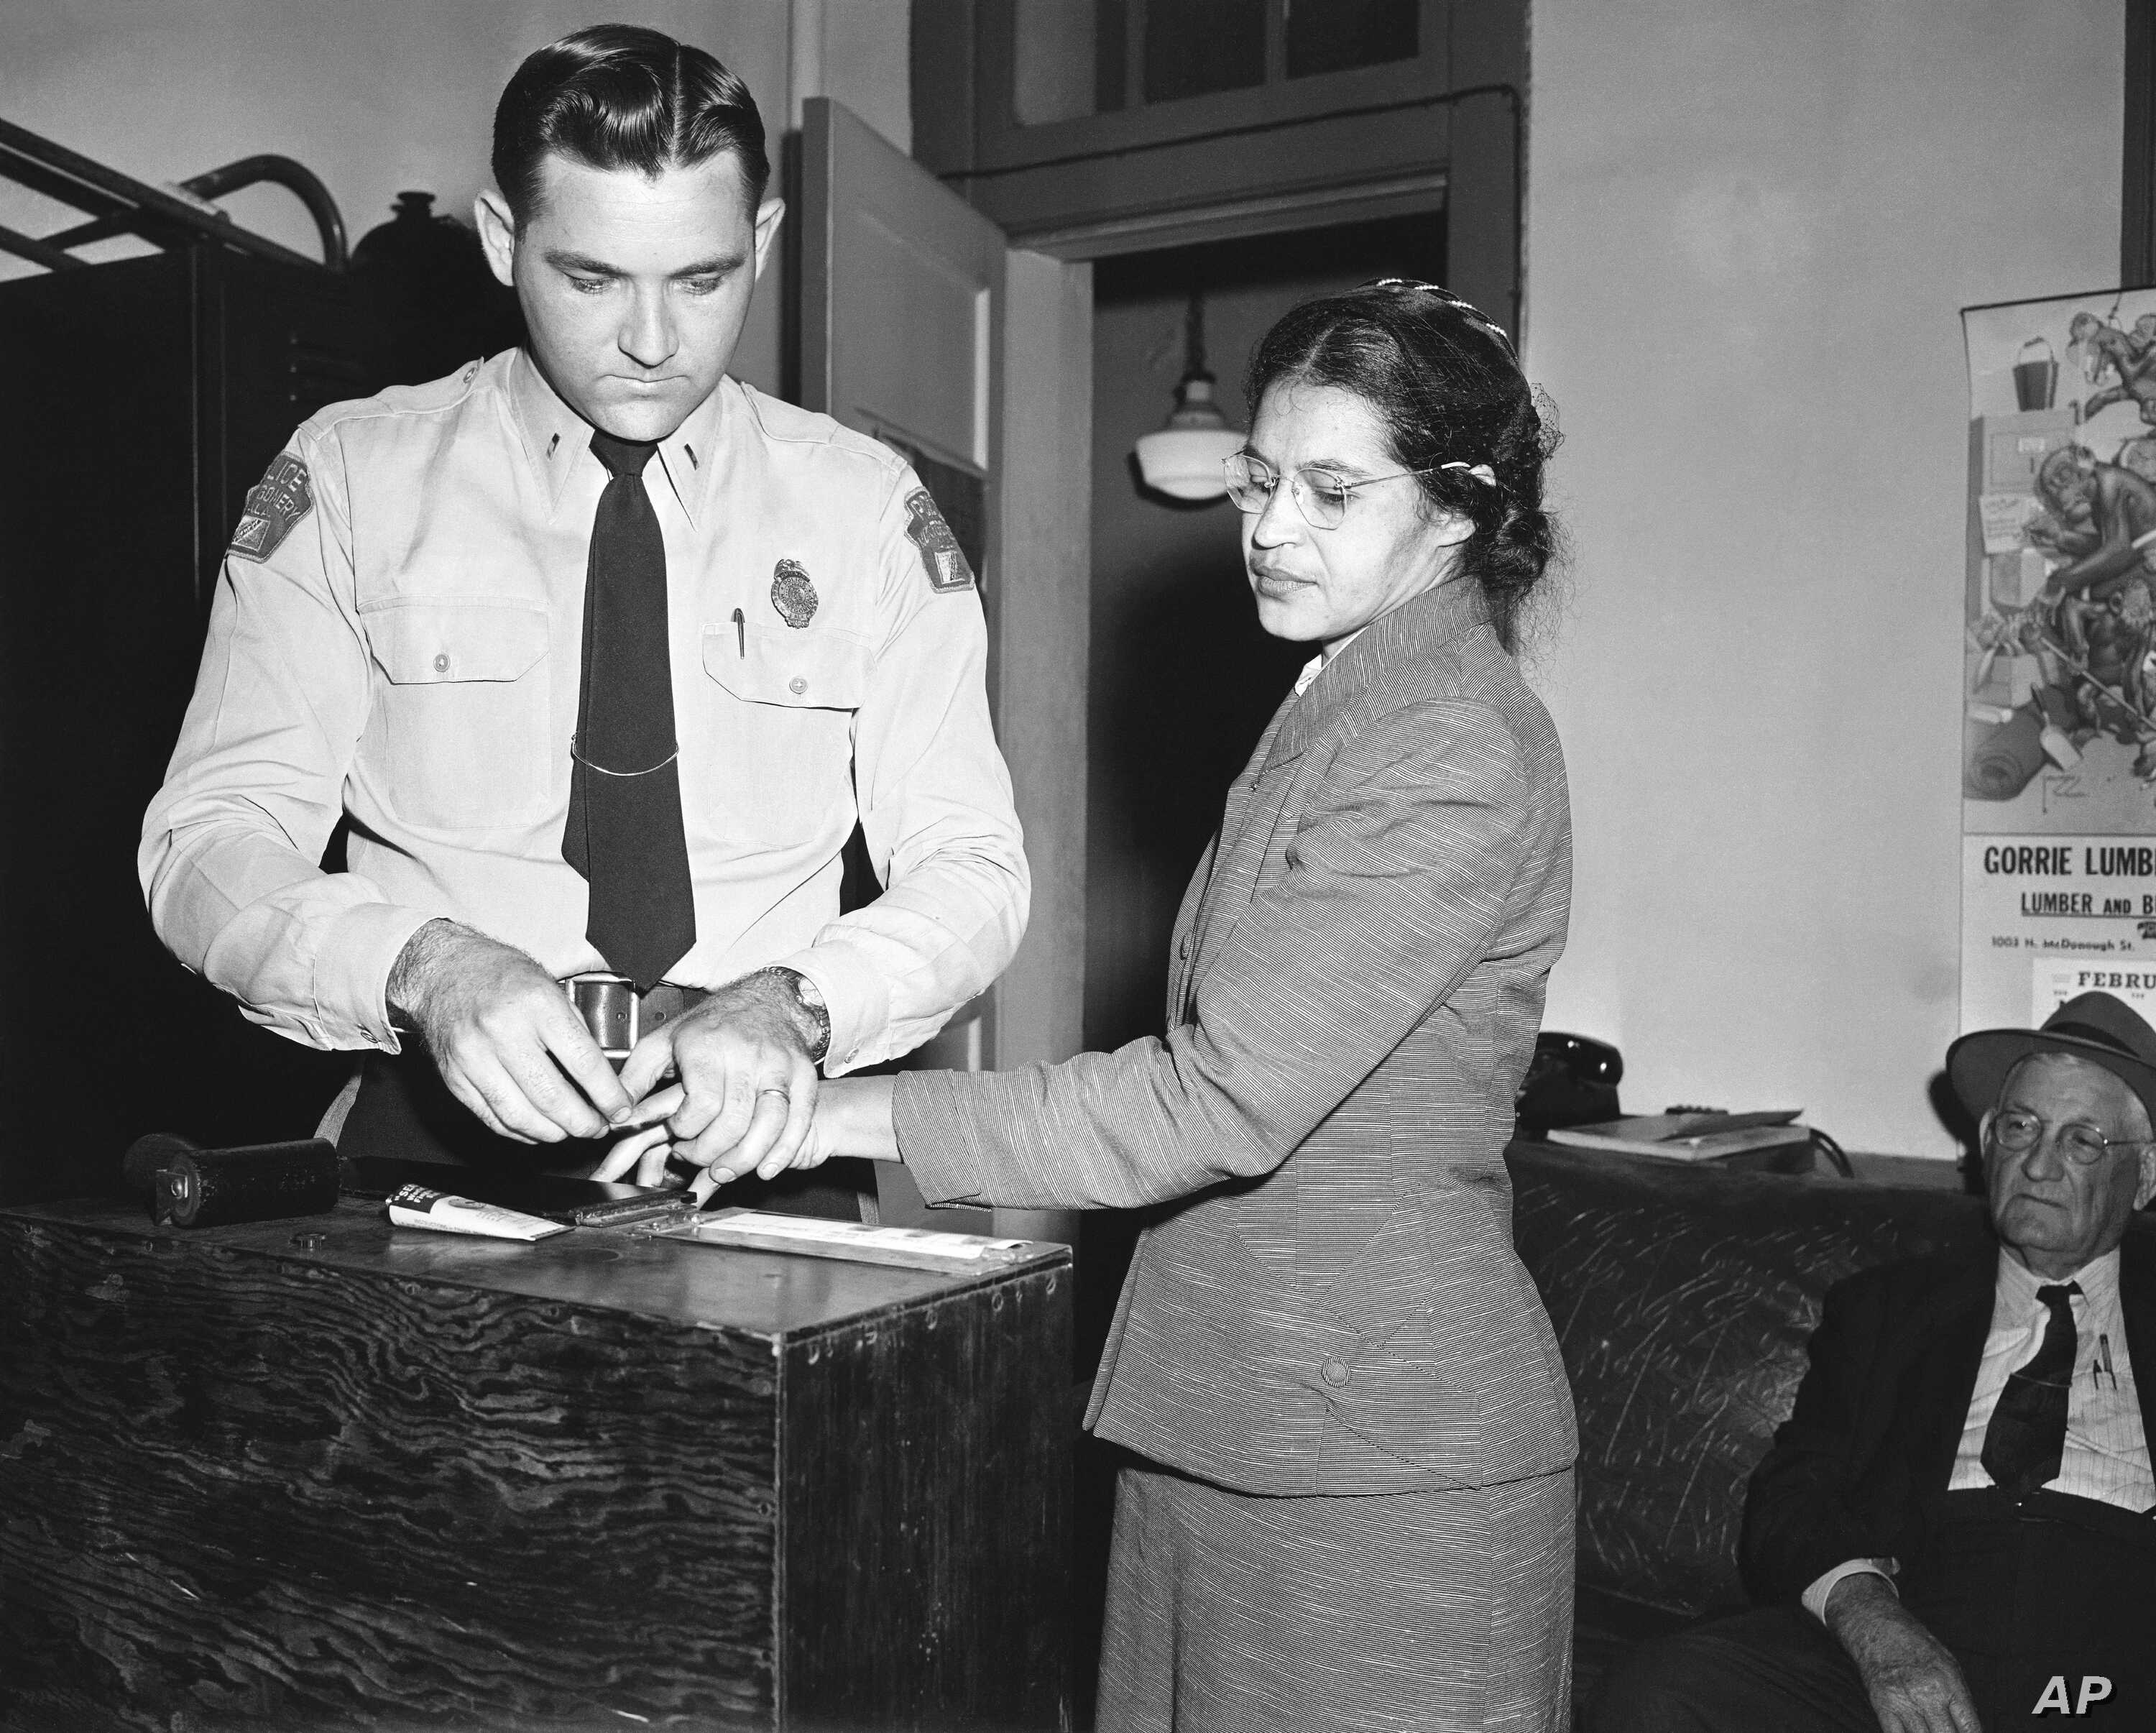 FILE - Rosa Parks, whose refusal to move to the back of a bus, touched off the Montgomery bus boycott and the beginning of the civil rights movement, is fingerprinted by police Lt. D.H. Lackey in Montgomery, Alabama, Feb. 22, 1956.